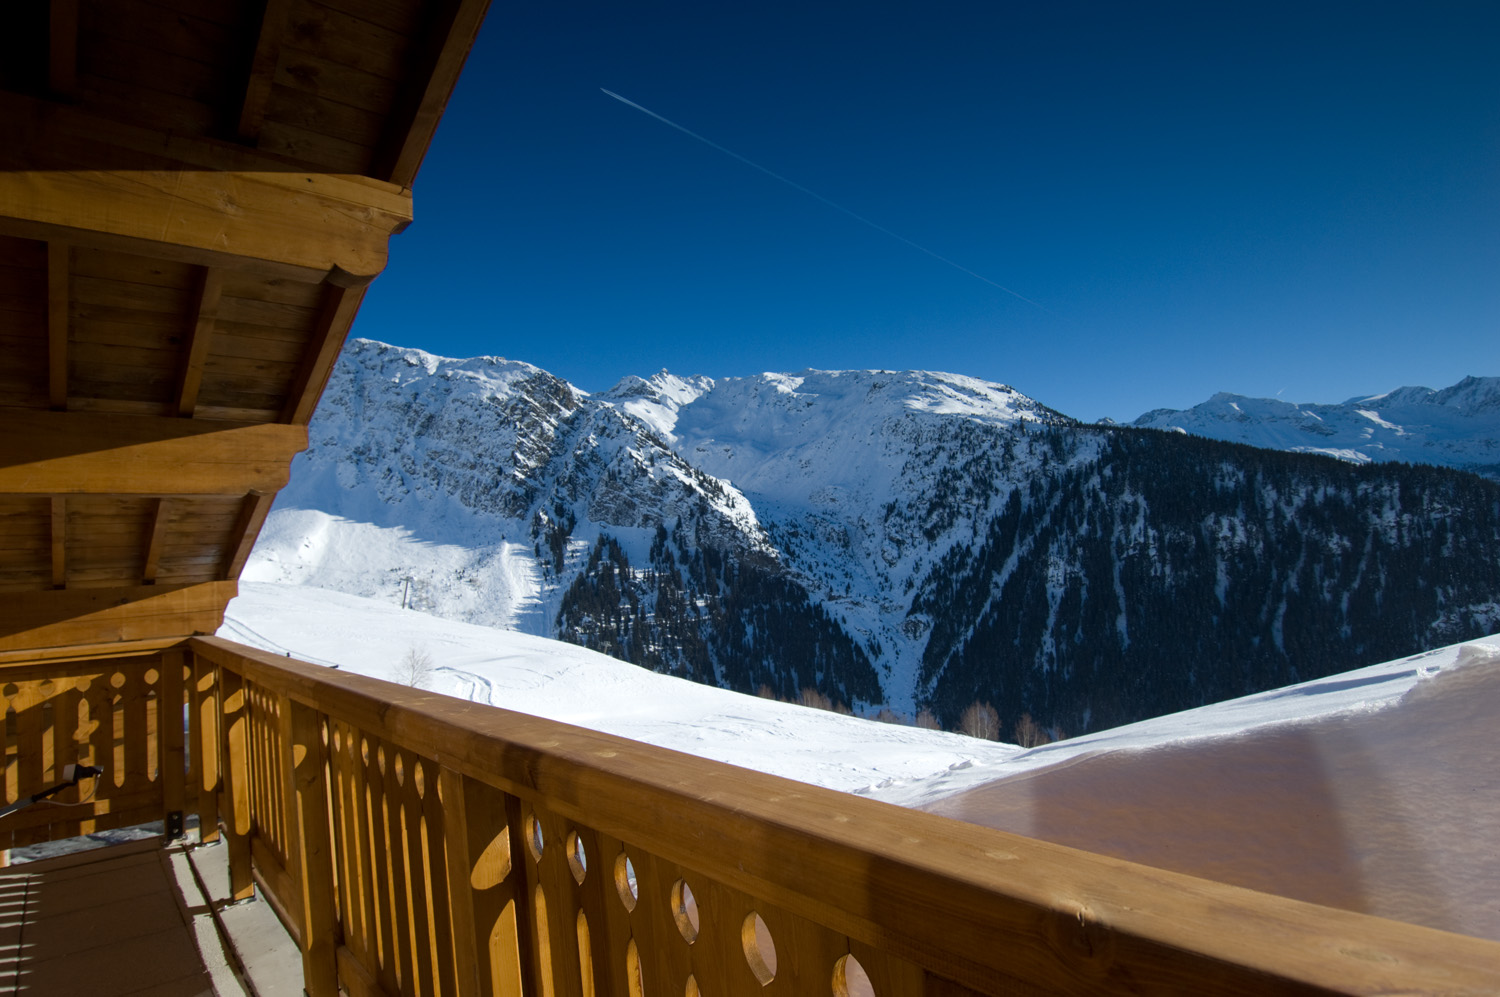 Penthouse Chalet: French skiing accommodation in La Rosiere